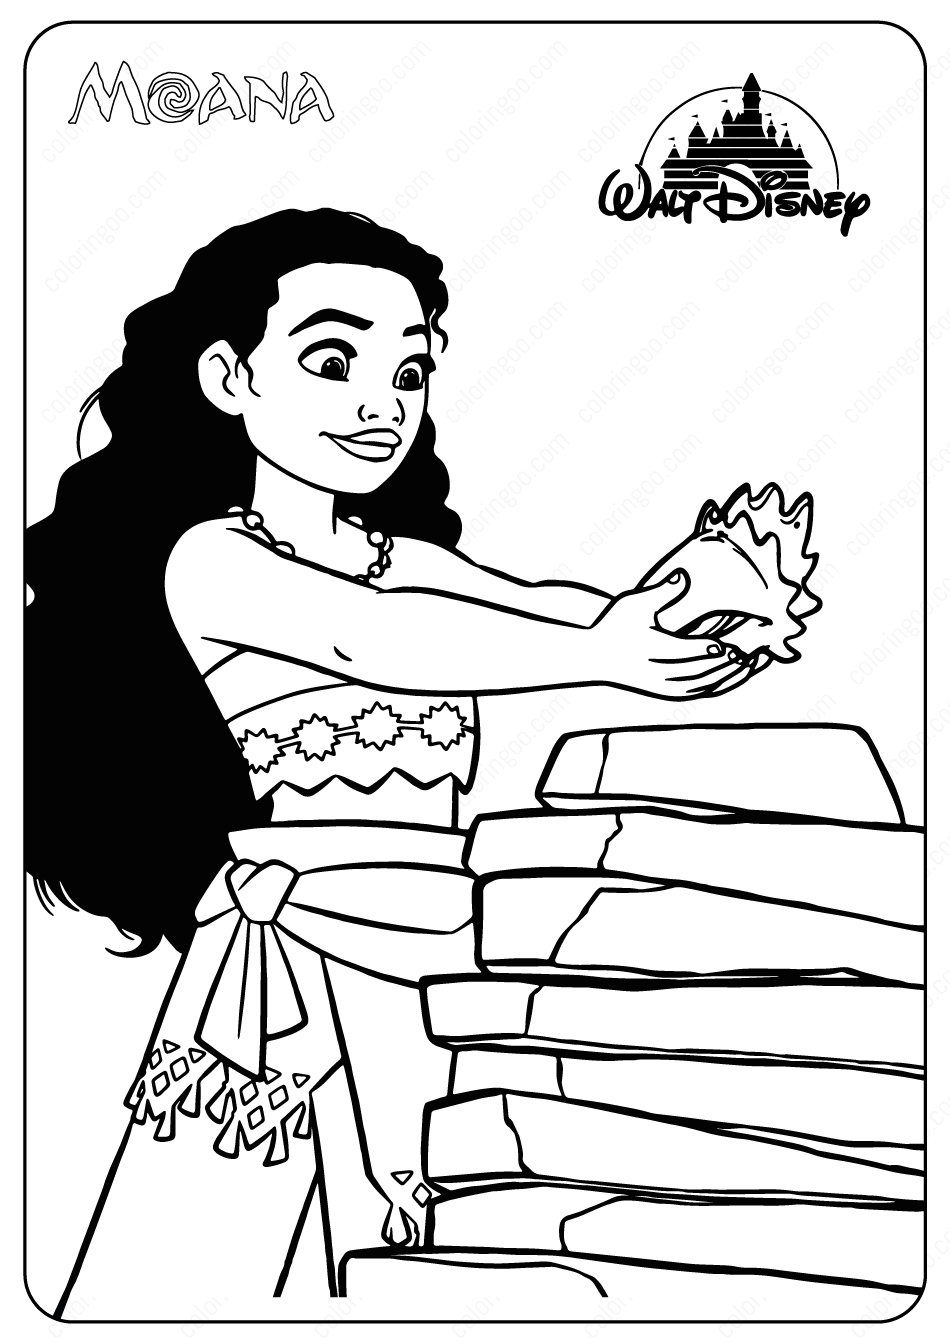 disney moana coloring pages moana coloring pages to download and print for free coloring disney moana pages